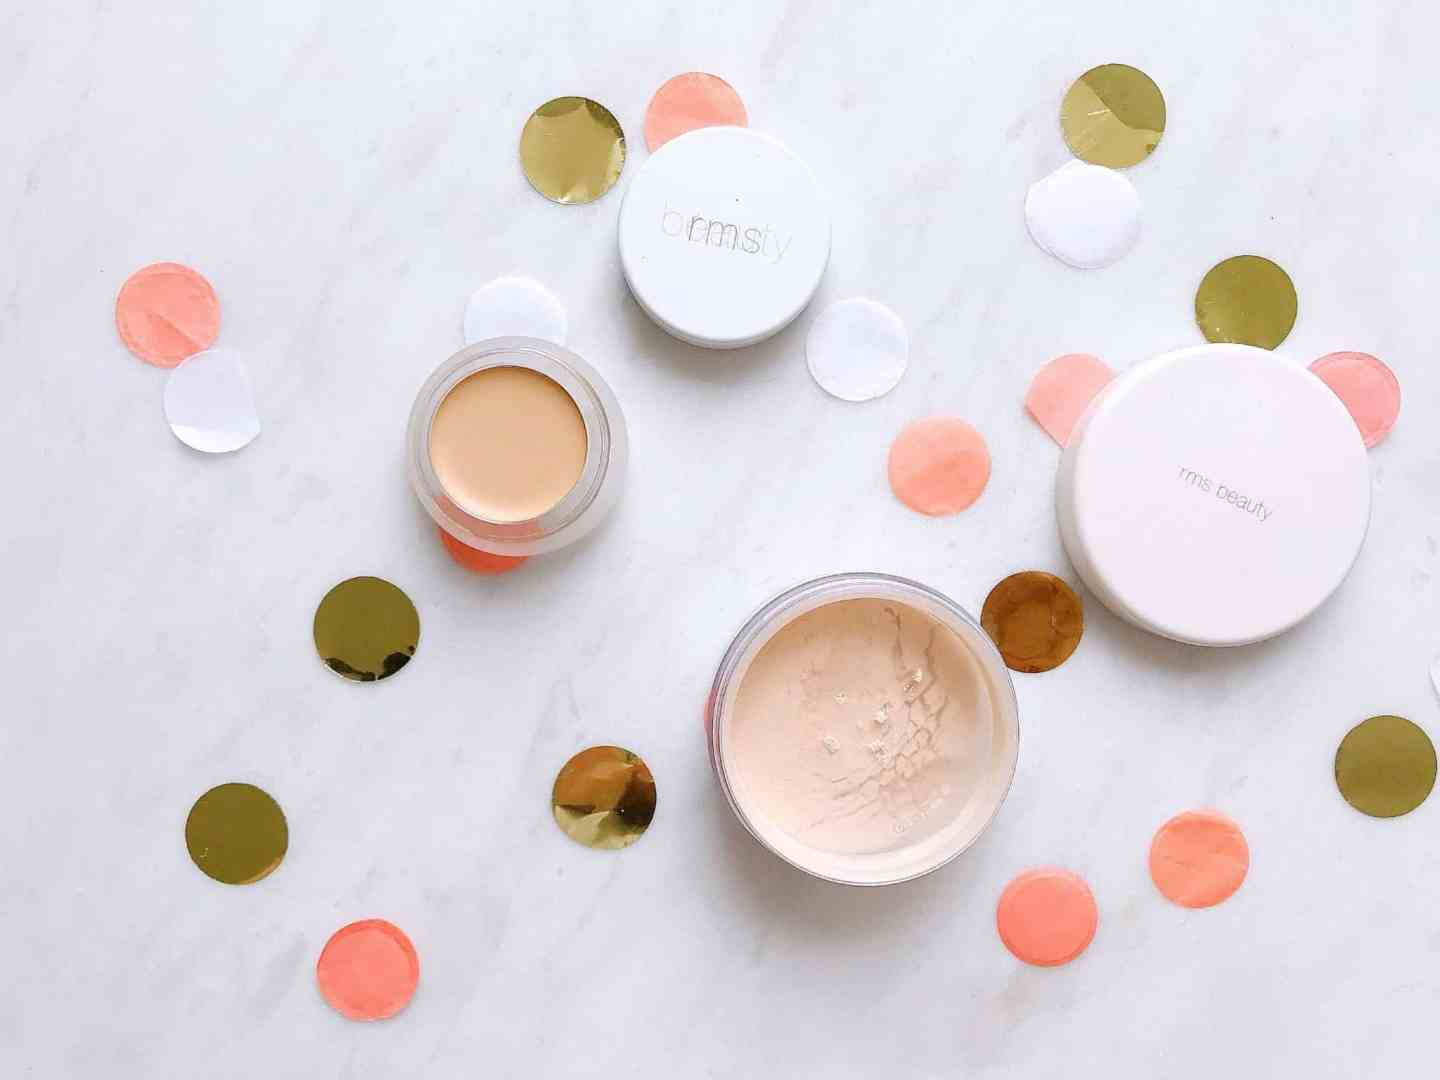 Do RMS Beauty 'Un' Cover-up and 'Un' Powder Live Up To Their Cult Status?